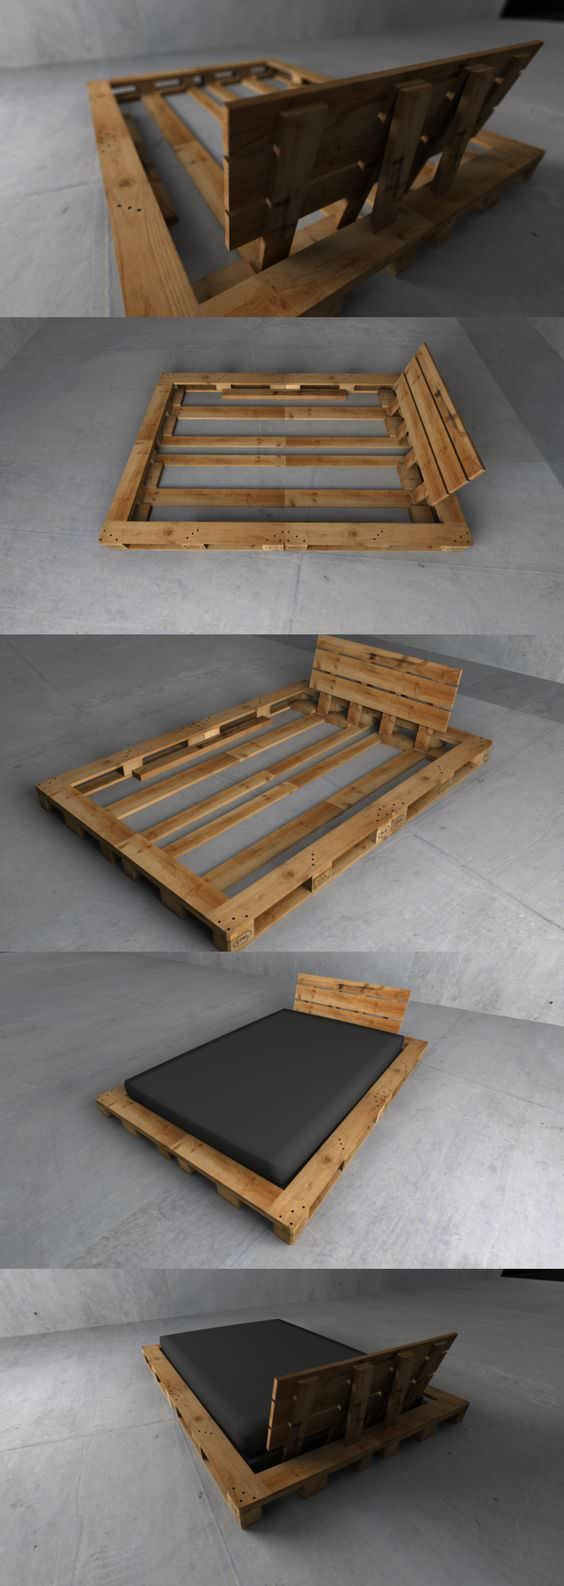 Wohndesign schlafzimmer einfach  creative recycled pallet beds youull never want to leave